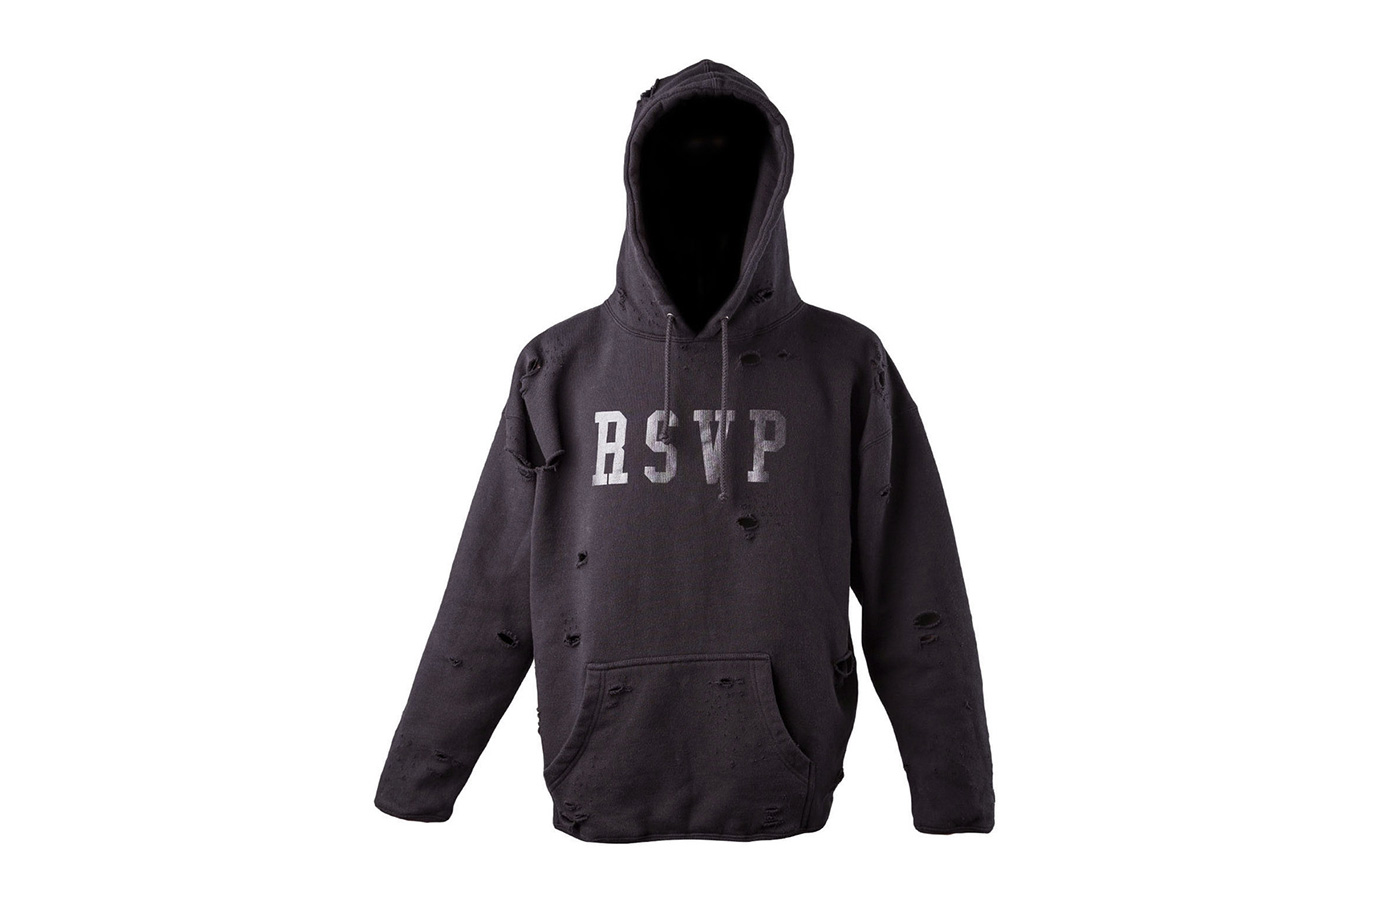 RSVP Gallery Distressed T-Shirt and Hoodie